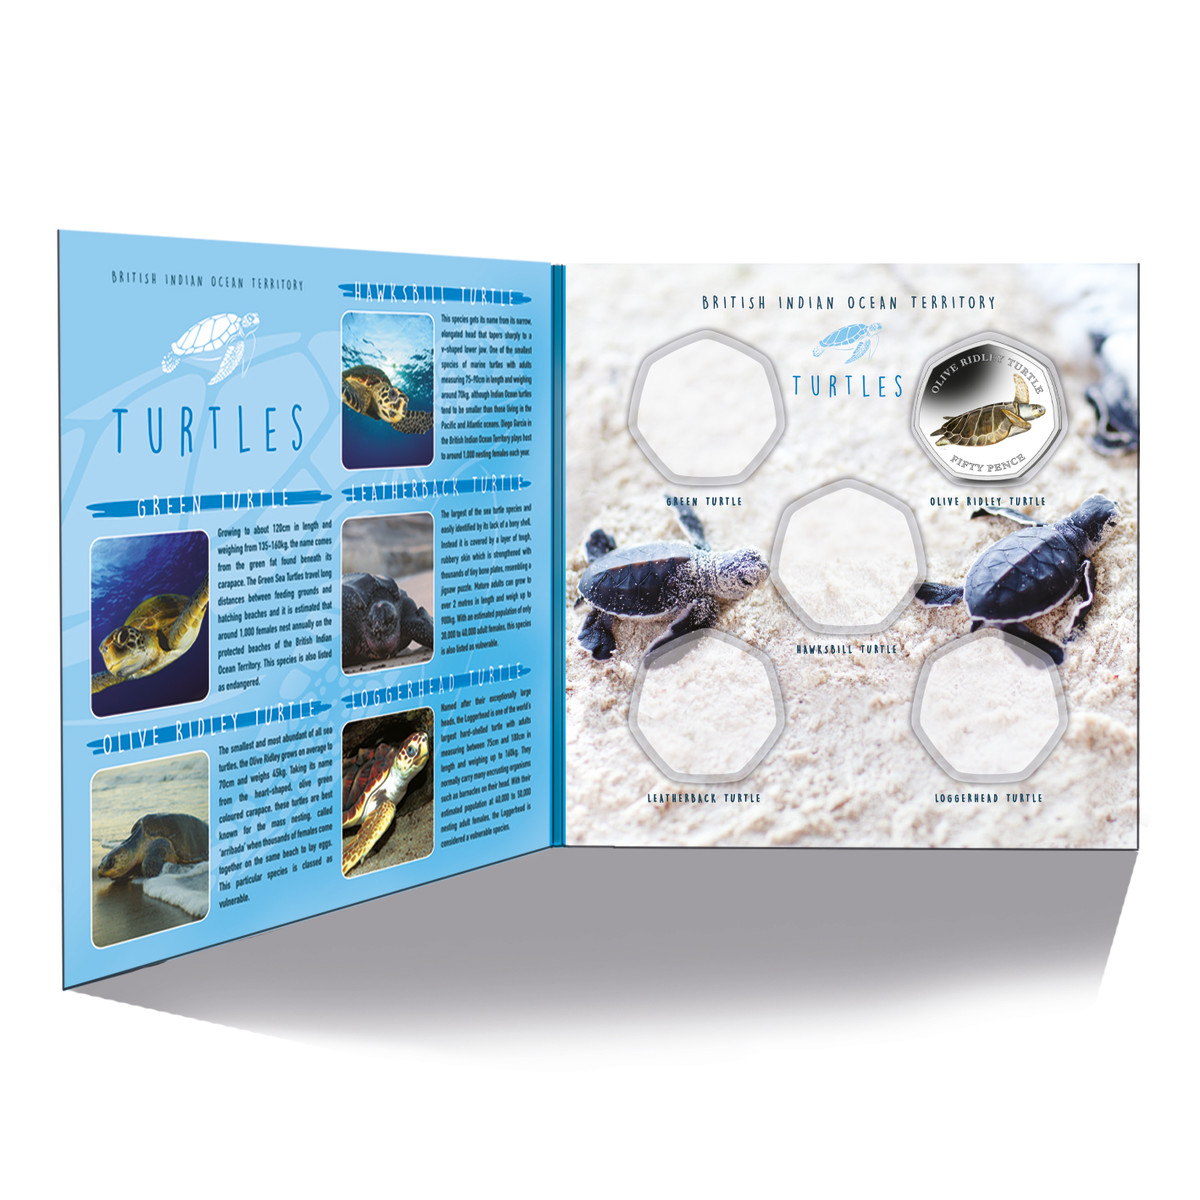 The Sea Turtle story board album houses all five of the coins in the popular Sea Turtle series struck by Pobjoy Mint for The British Indian Ocean Territory.